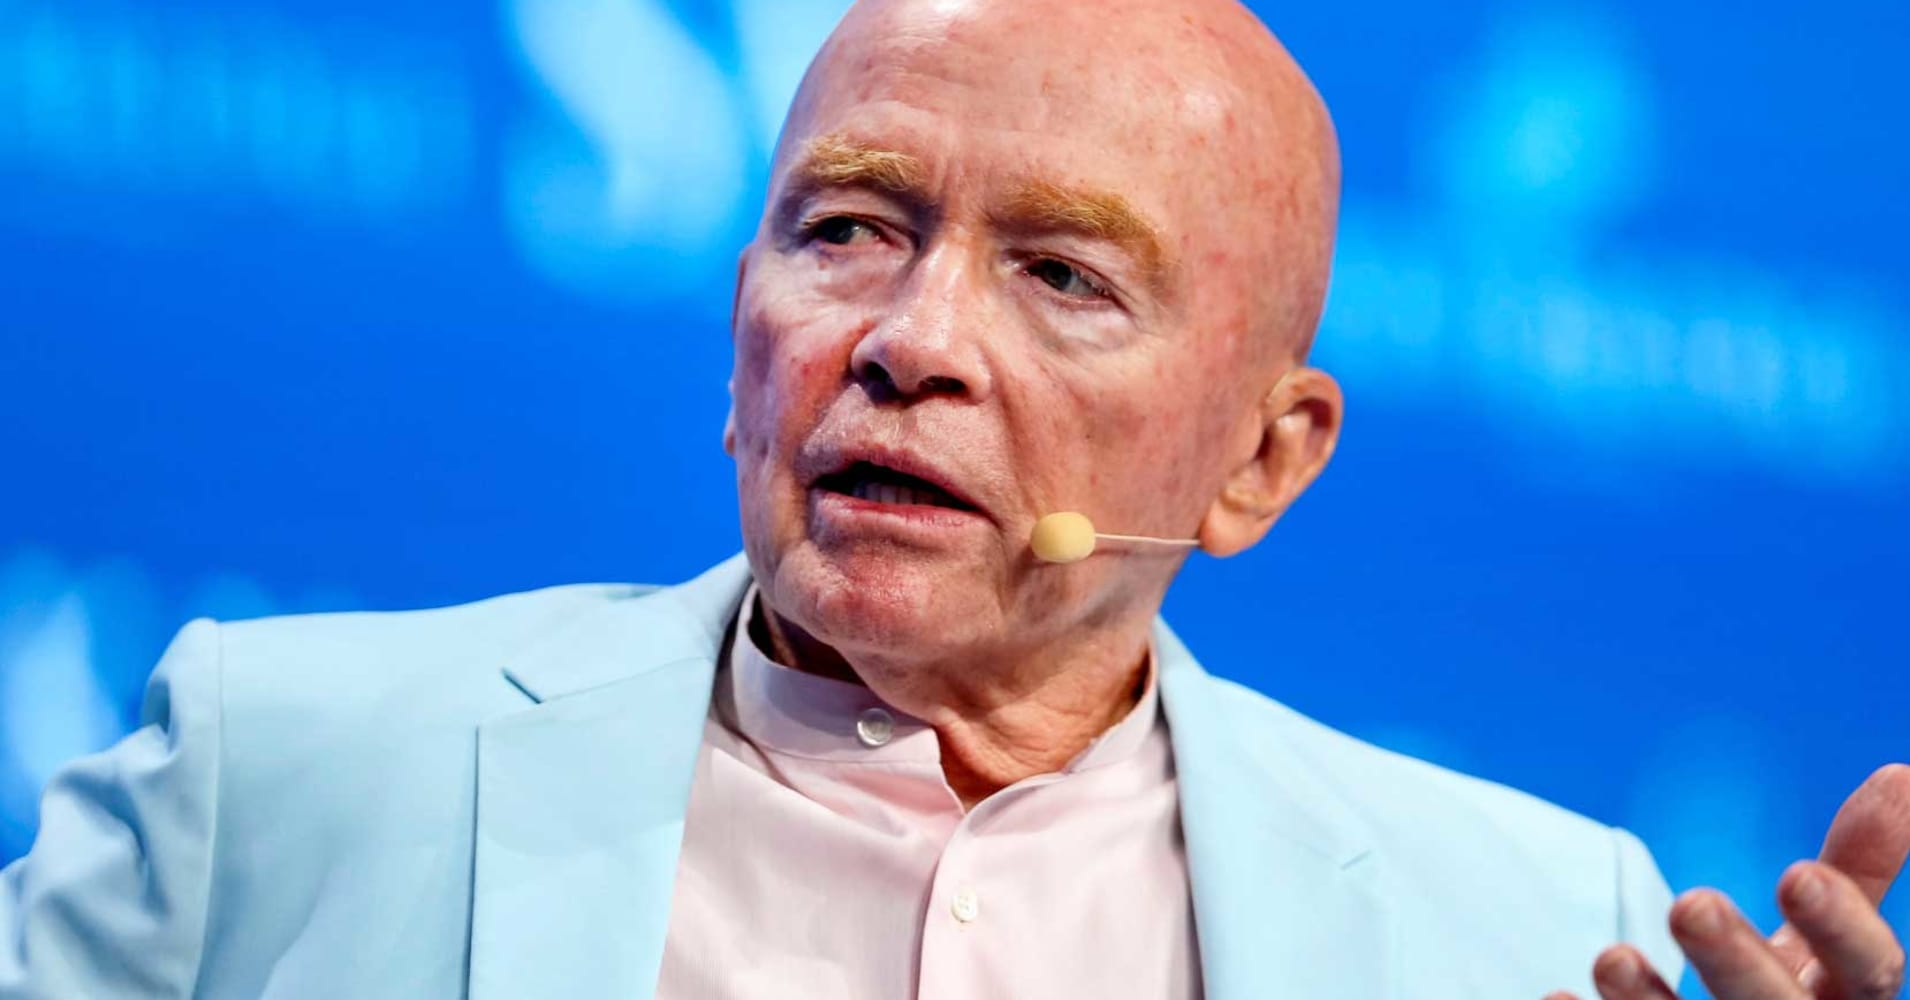 Global investing mogul Mark Mobius says Theresa May 'has got to go'